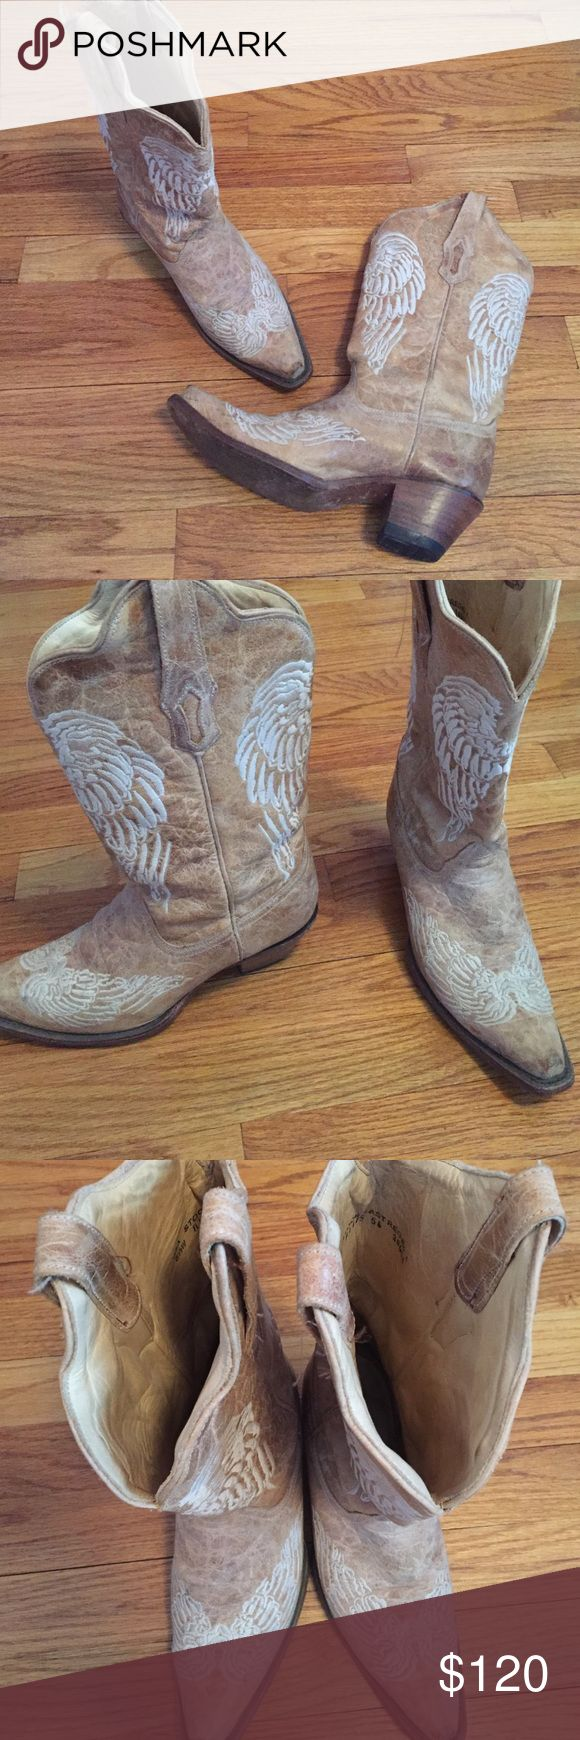 Corral Cowboy(girl) Boots Bought these last summer. They're very broken in (which alone id be willing to pay $100 for!! Painful process!). They have never seen mud, dirt or gravel. Only used on wood floors to dance on. In great, broken in condition which gives them character. Corral Shoes